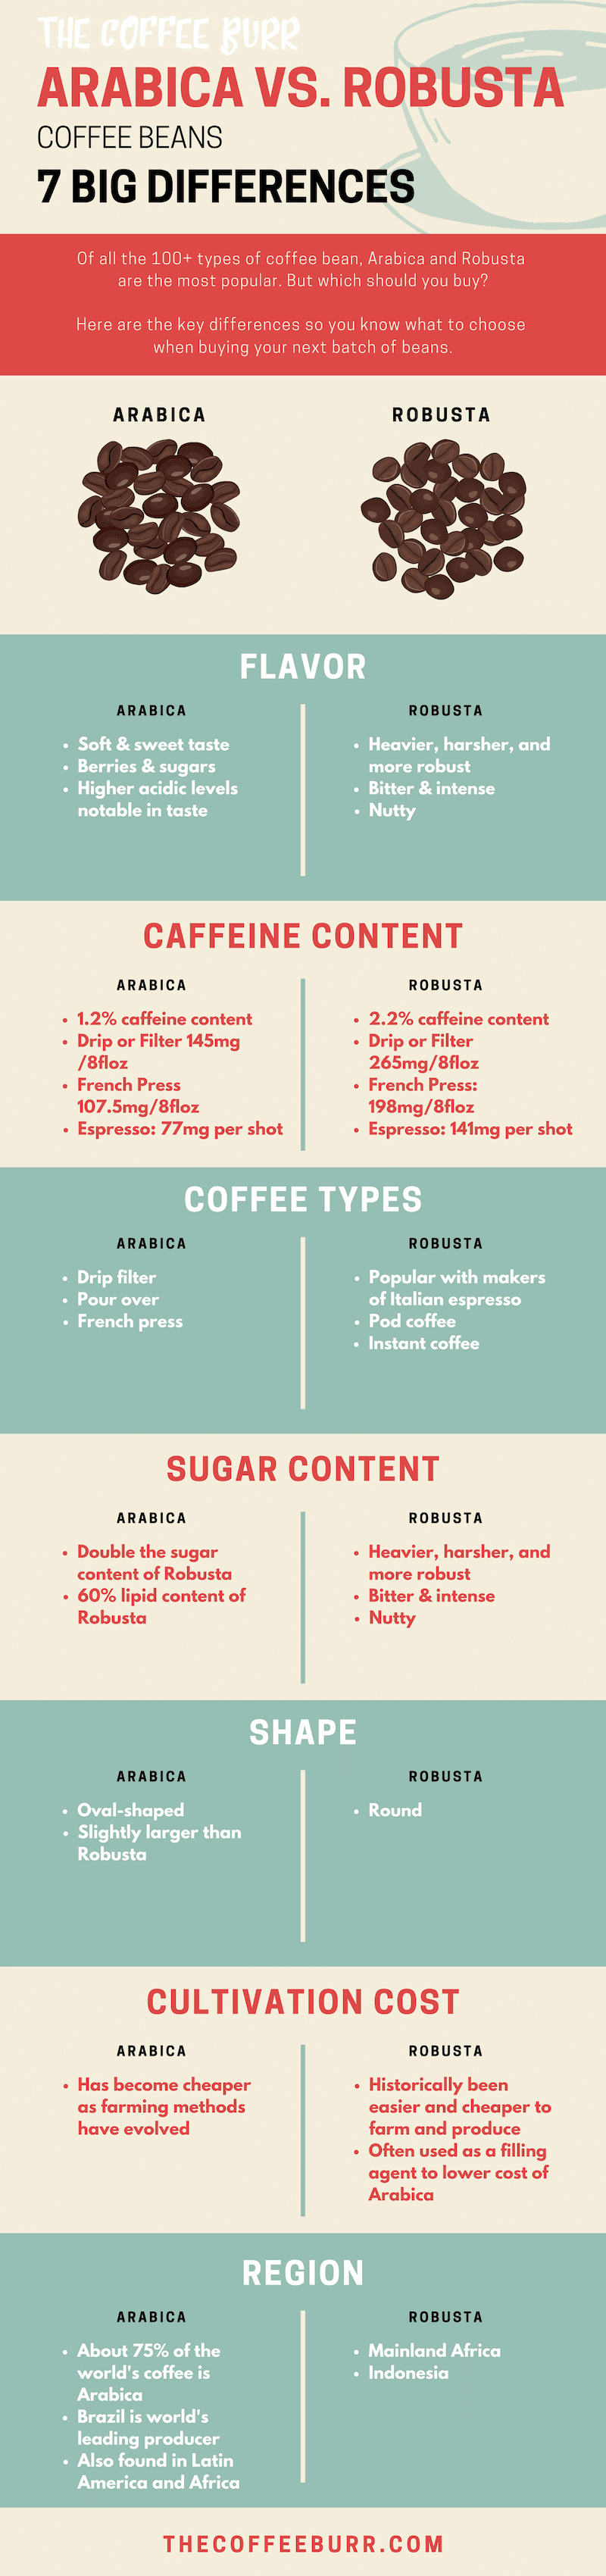 arabica vs robusta coffee beans infographic